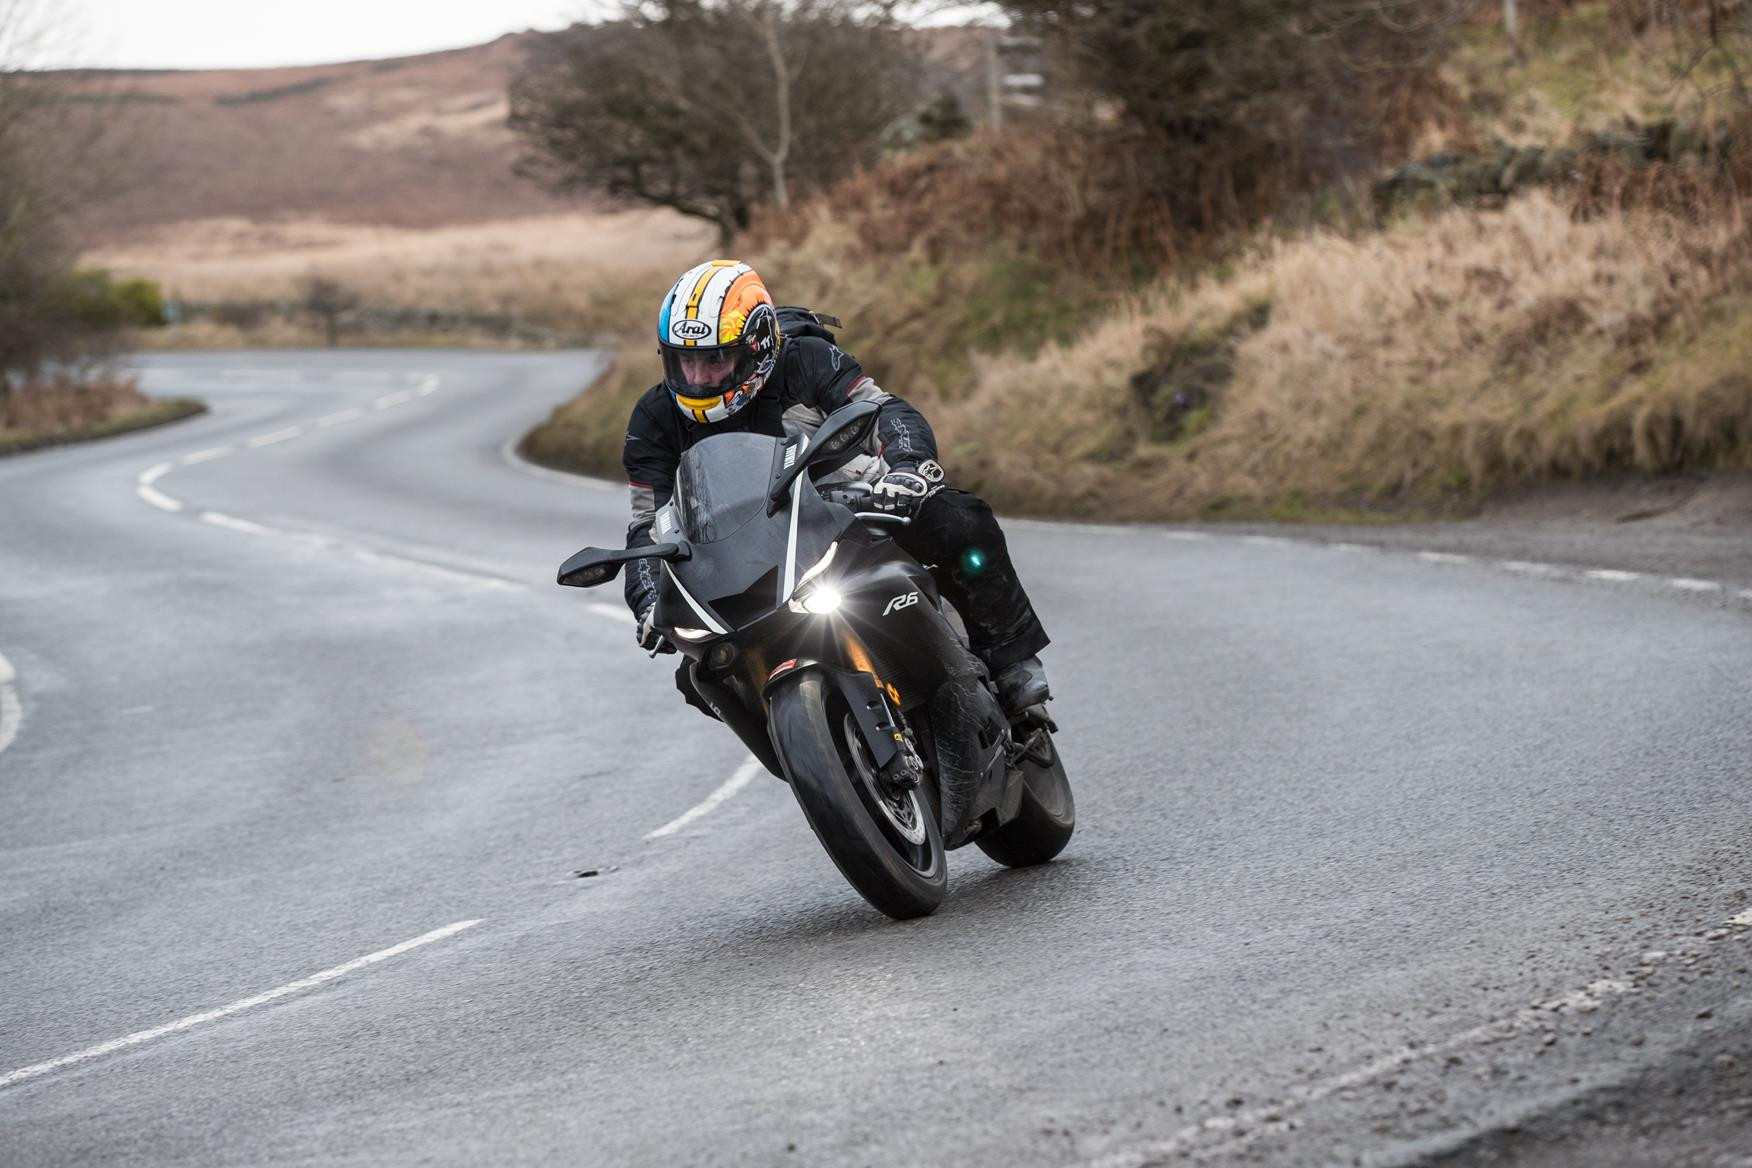 MCN Fleet: How costly is the R6?